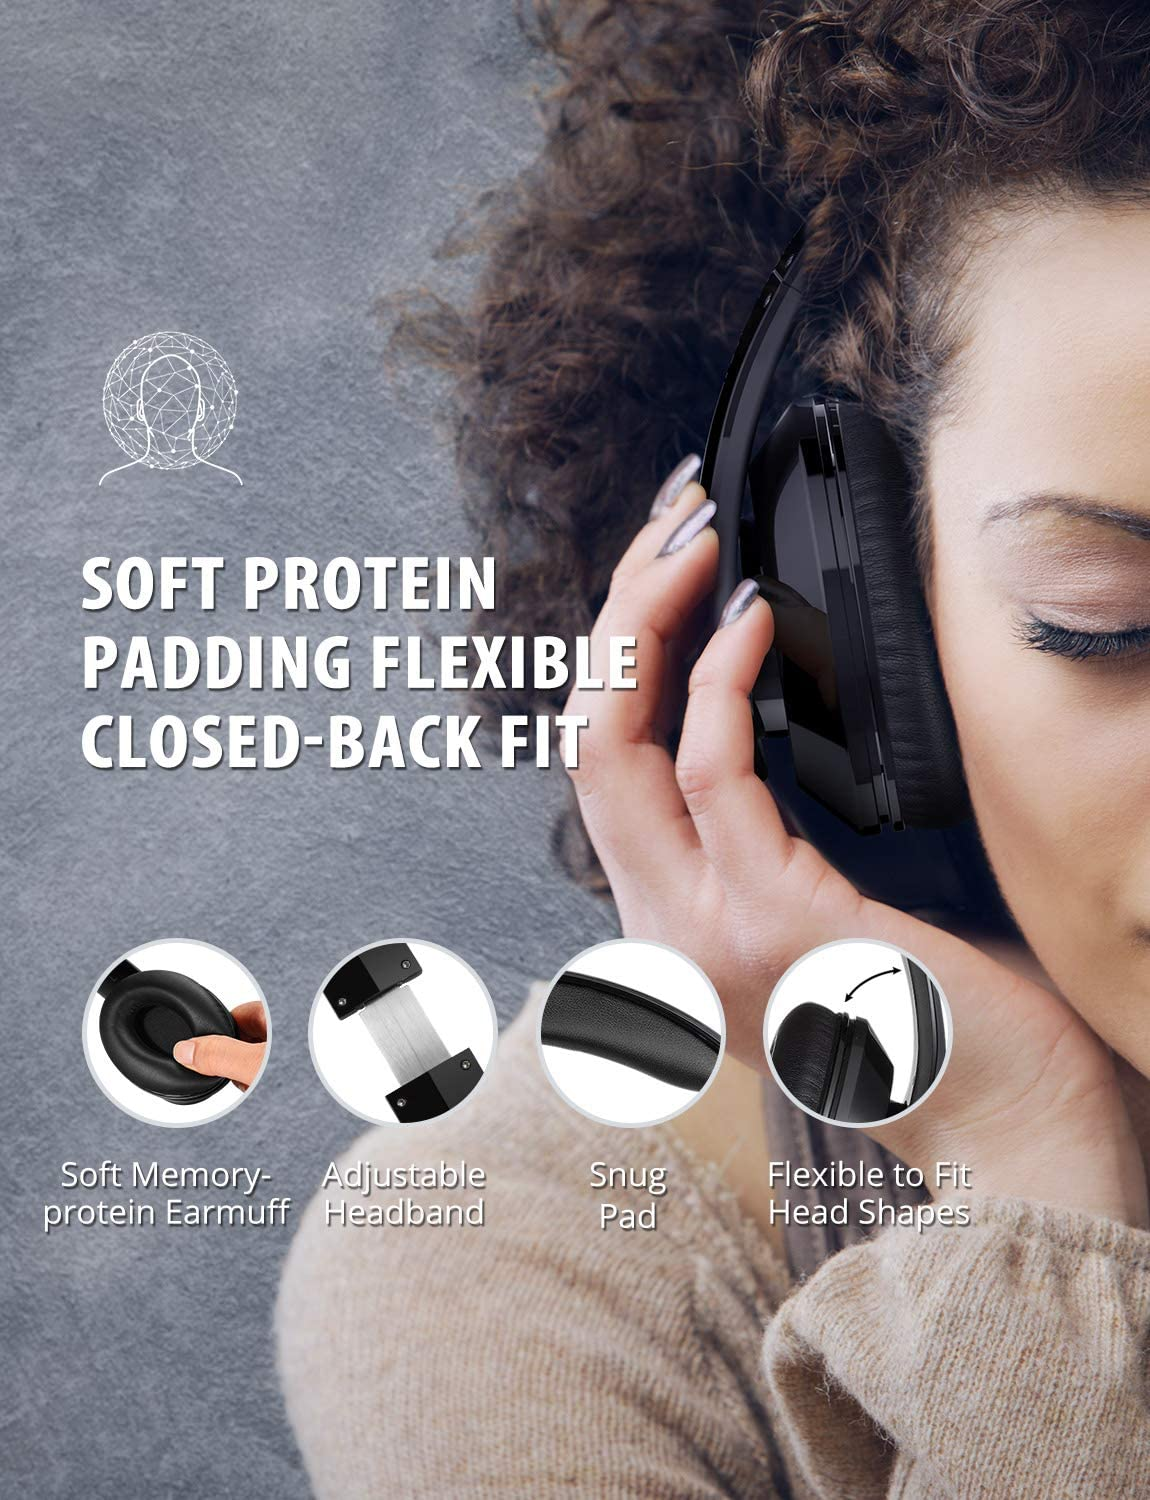 Built-in Mic Wired Mode PC//Cell Phones//TV Foldable Soft Memory-Protein Earmuffs Wireless Headset Hi-Fi Stereo Sound Over-Ear Wireless Headphone Mpow 059 Bluetooth Headphones